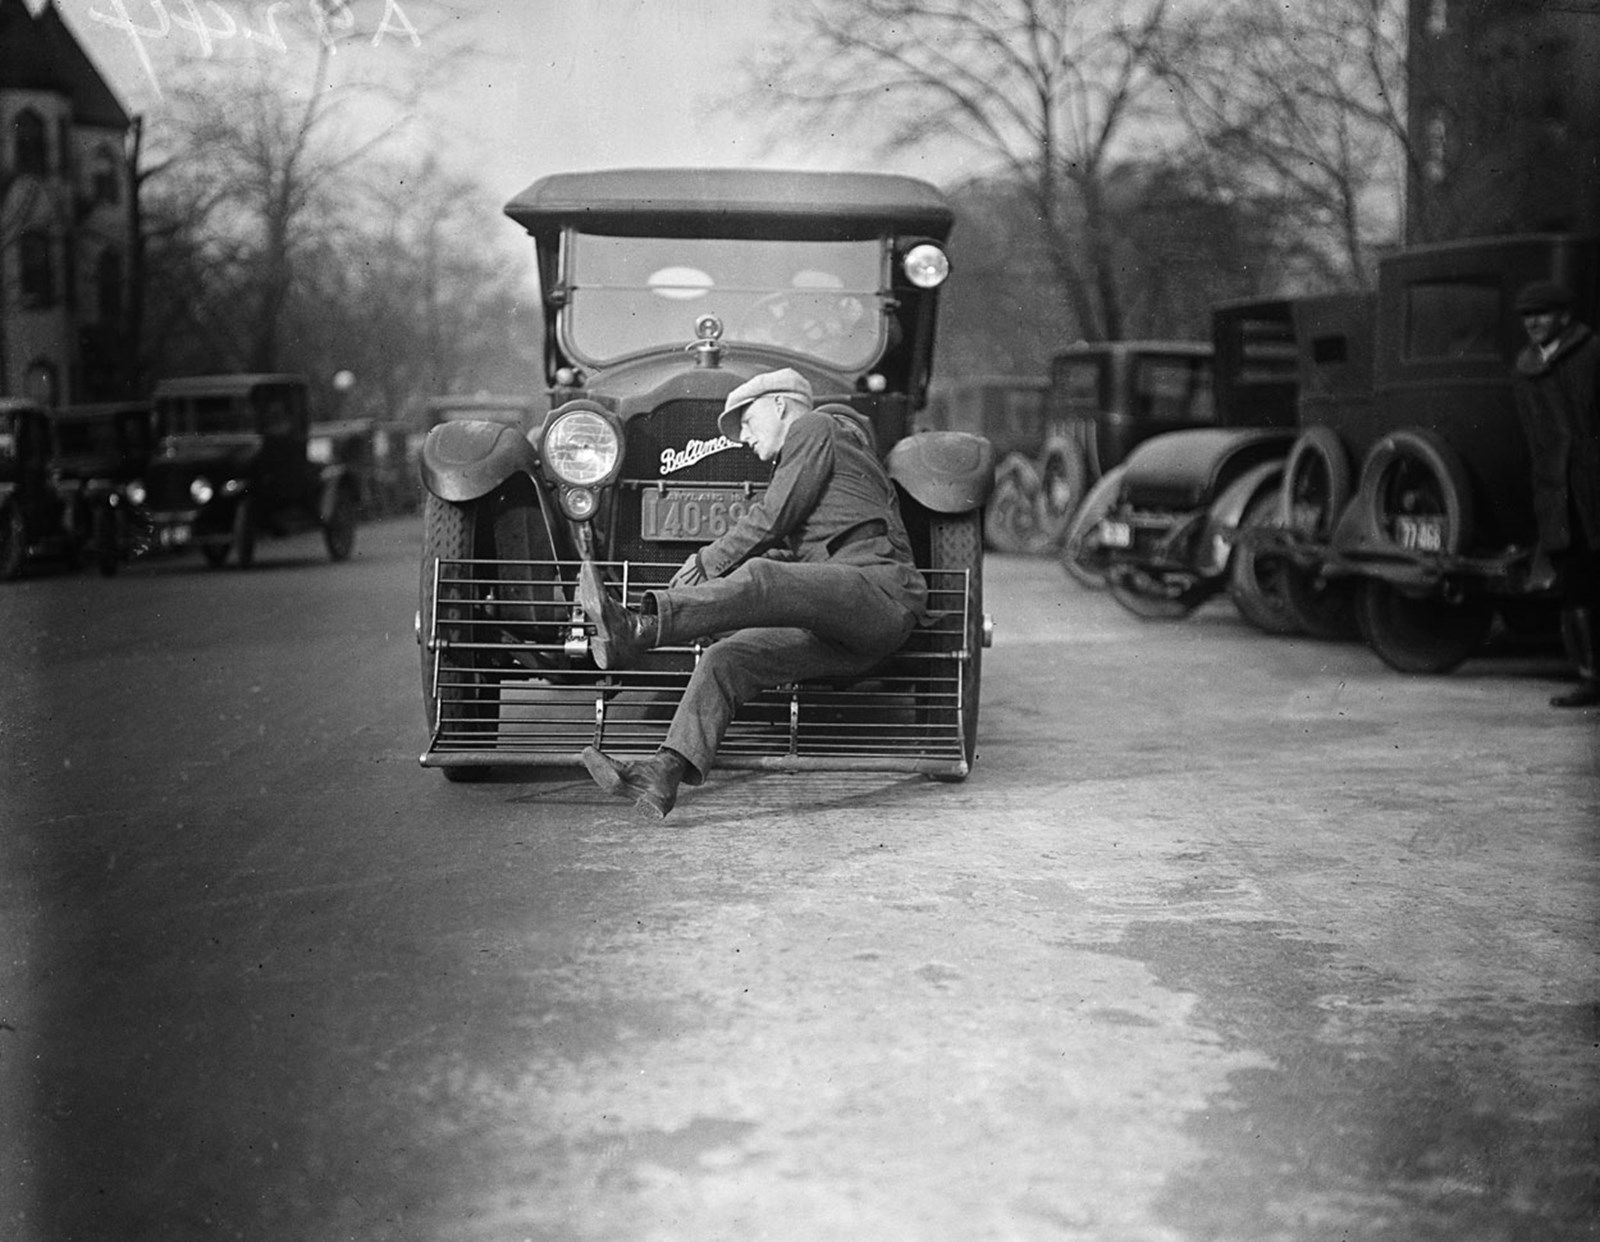 1920s-pedestrian-catcher-3 (1)